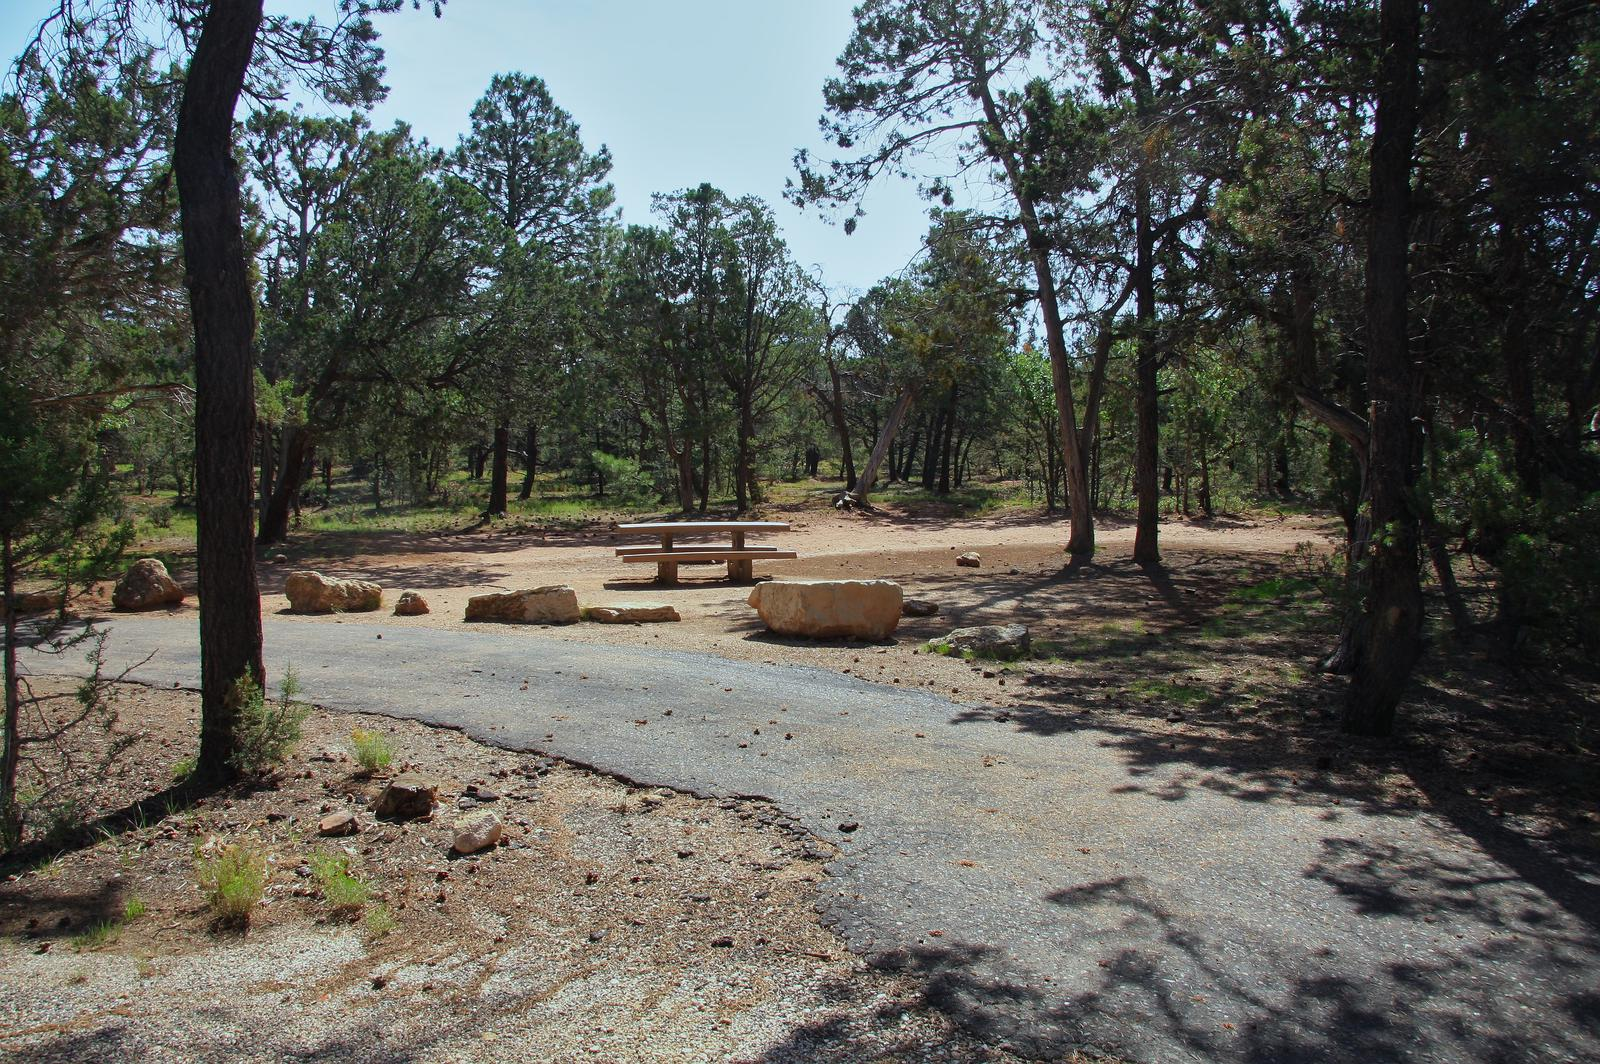 Picnic table, fire pit, and park spot, Mather CampgroundPicnic table, fire pit, and park spot for Oak Loop 247, Mather Campground